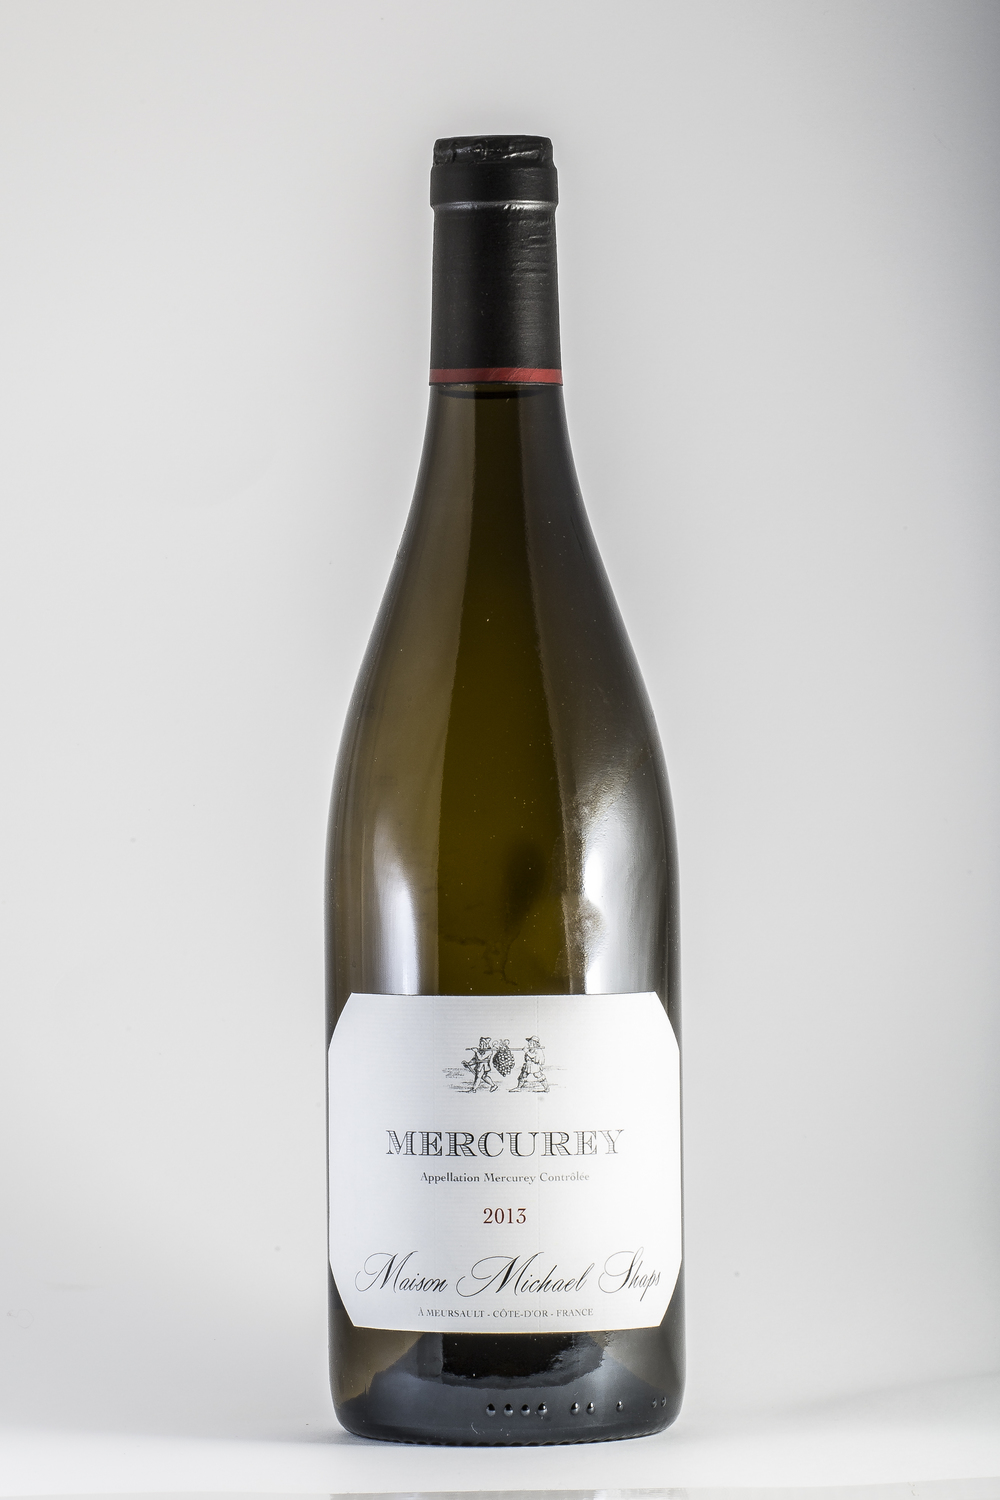 Maison Shaps 2013 Mercurey Blanc $19 Highly sought after for its beautiful blend of minerality and fruit, the wines from this appellation offer a great value. Fermented in a small percentage of one year old barrels, the finesse and complexity of Mercurey produces a style that is pleasing with a mix of classic Burgundian character, with some bright fruit that can be enjoyed in it's youth.